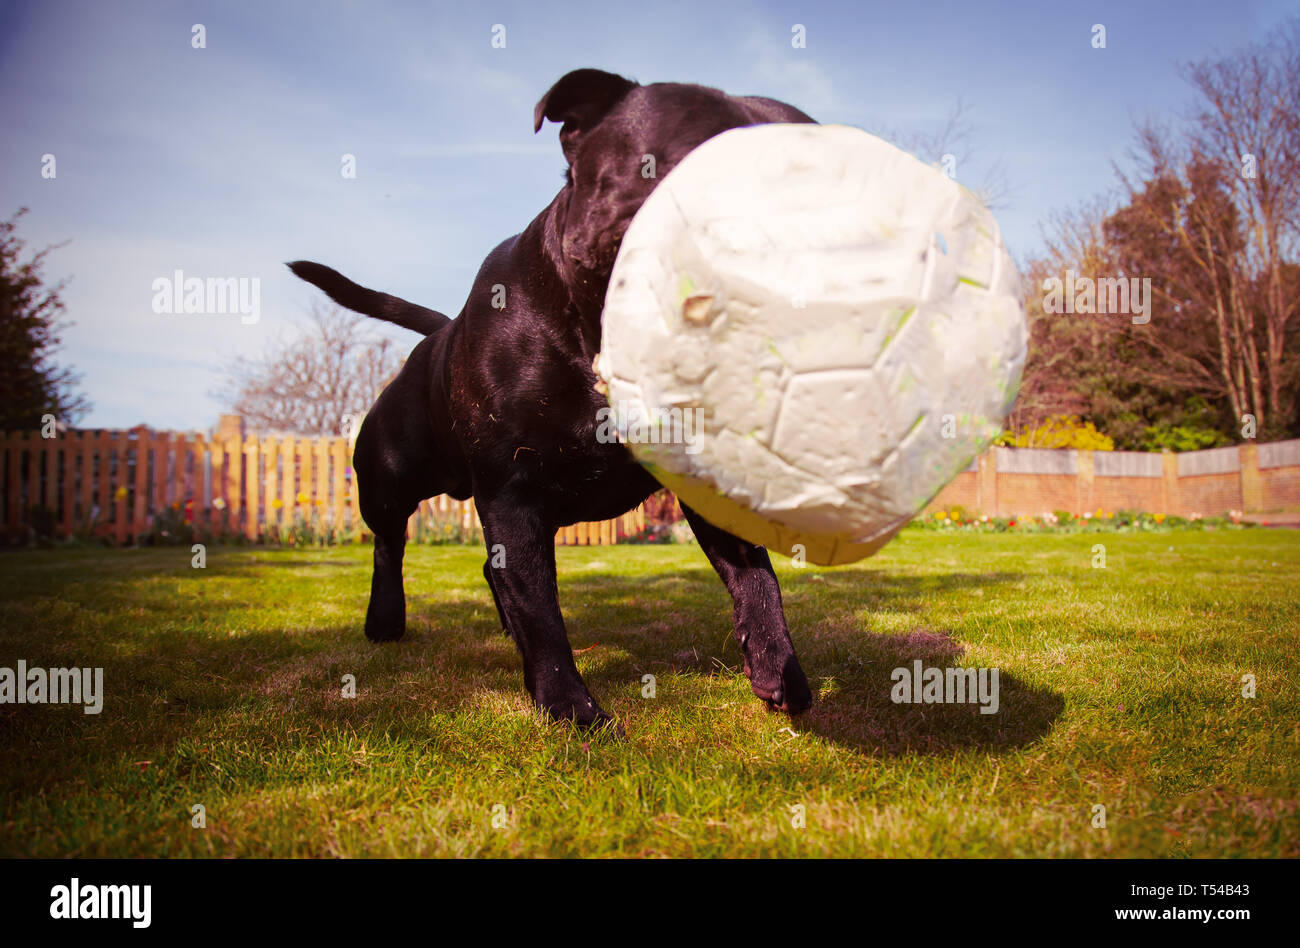 A Staffordshire bull terrier dog playing with a soccer ball that is a bit deflated after chewing. Taken from a low angle as the ball bounces in-front  - Stock Image